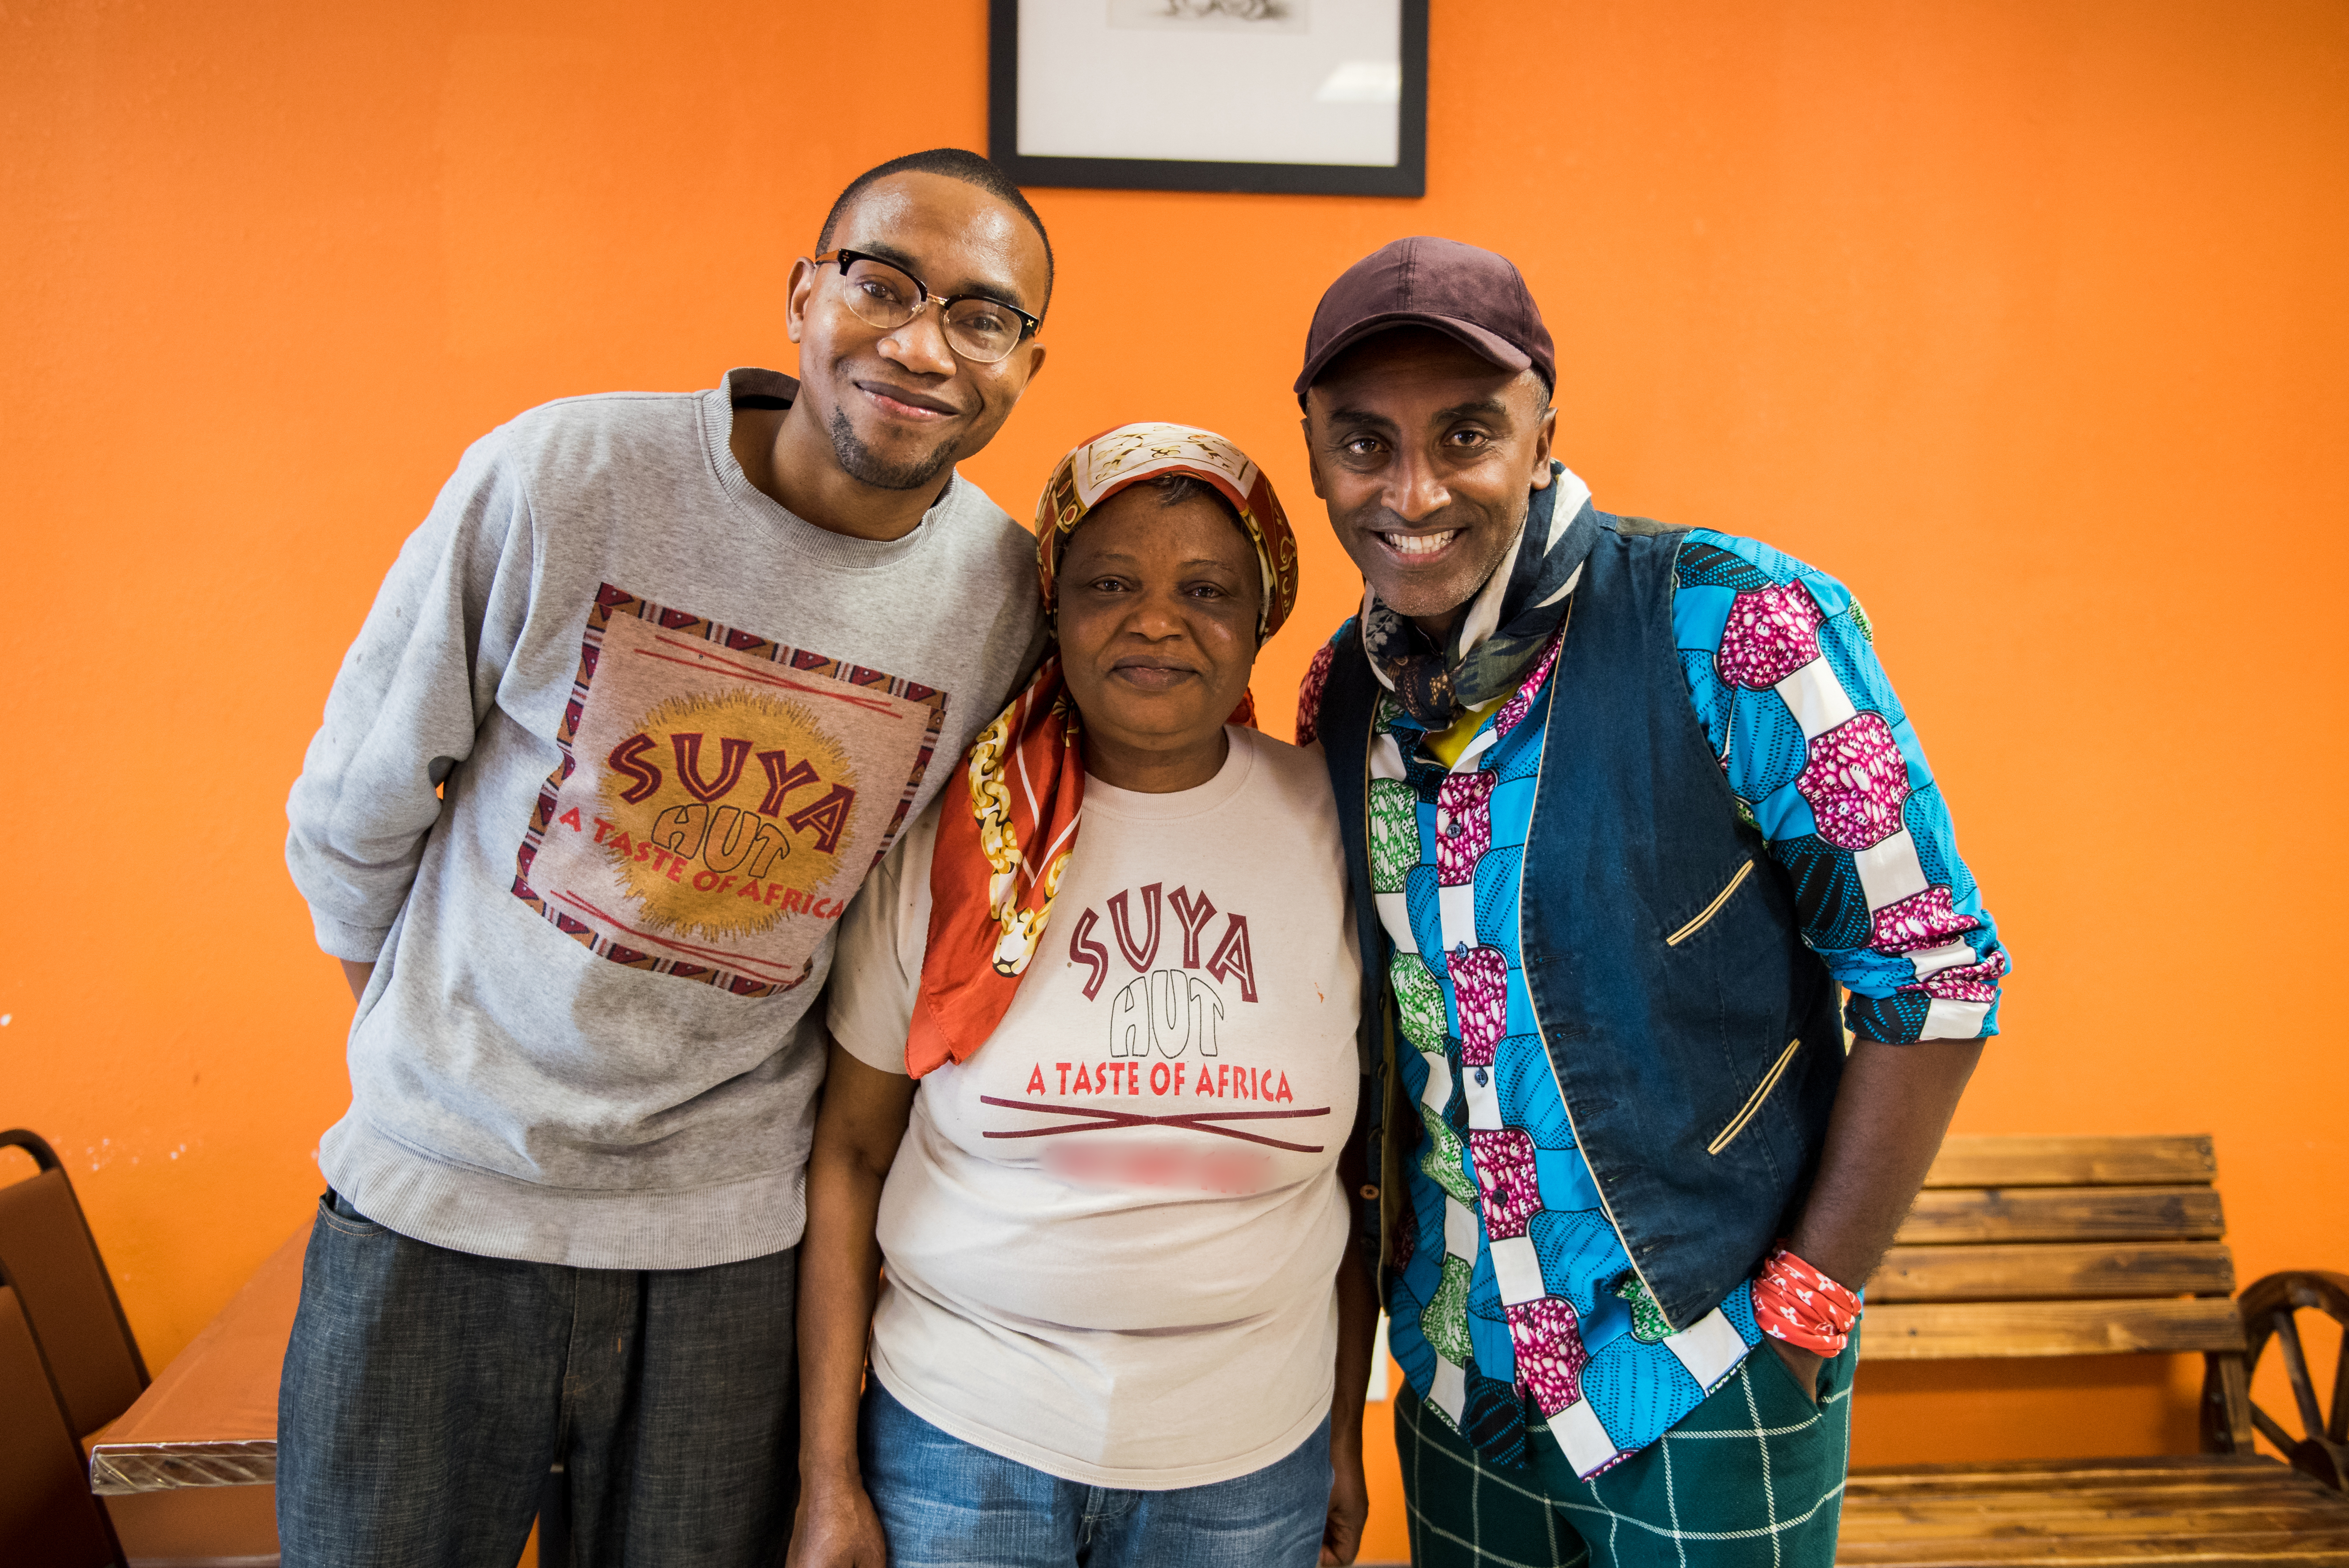 Marcus Samuelsson with Suya Hut chef and owner Patricia Nyan and cook Ahmadu A.